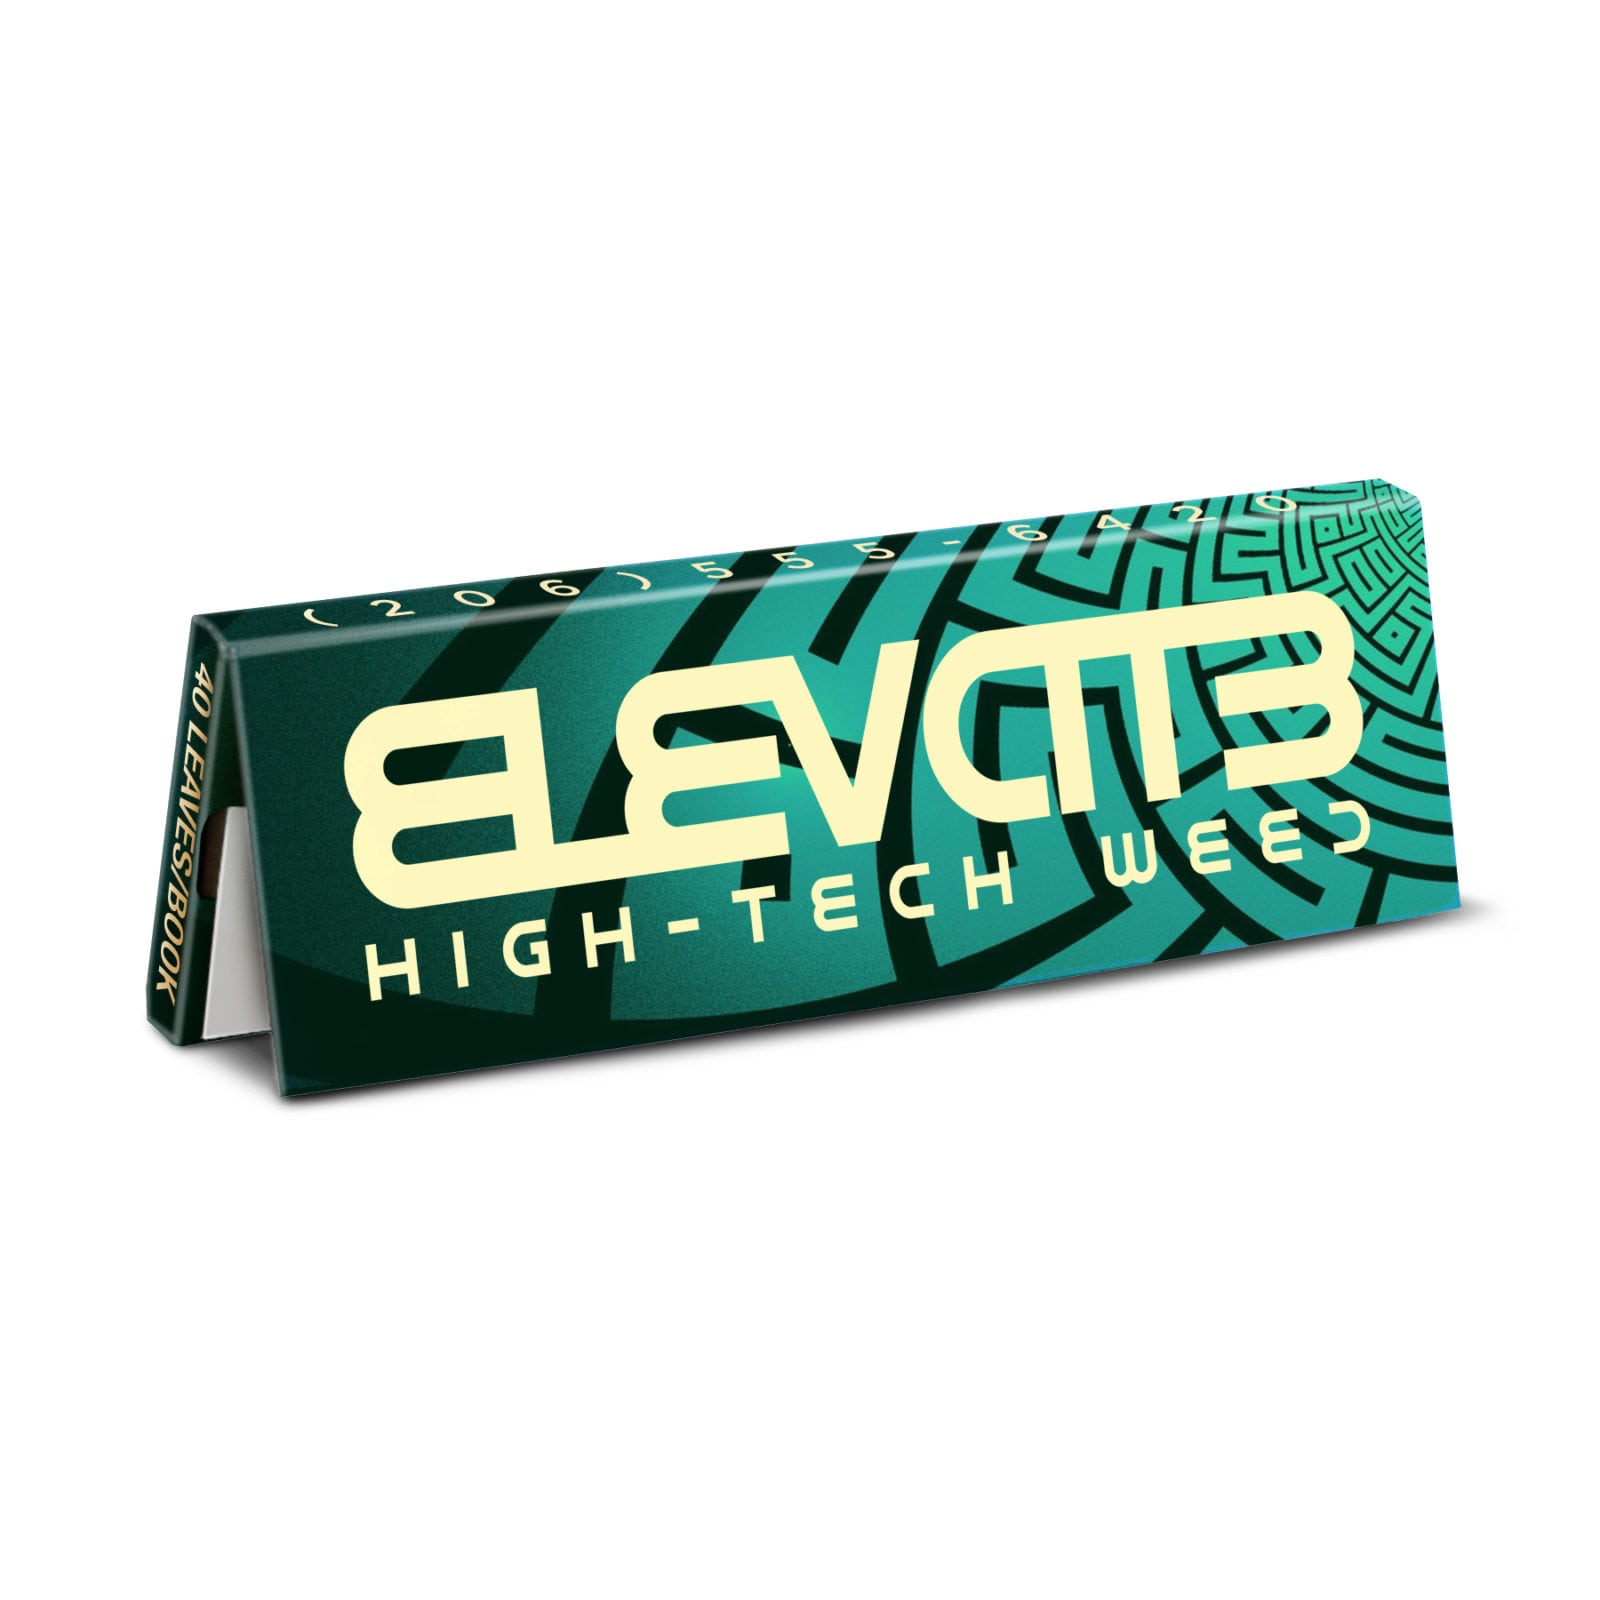 Custom Rolling Papers Promotional Products Cannabis